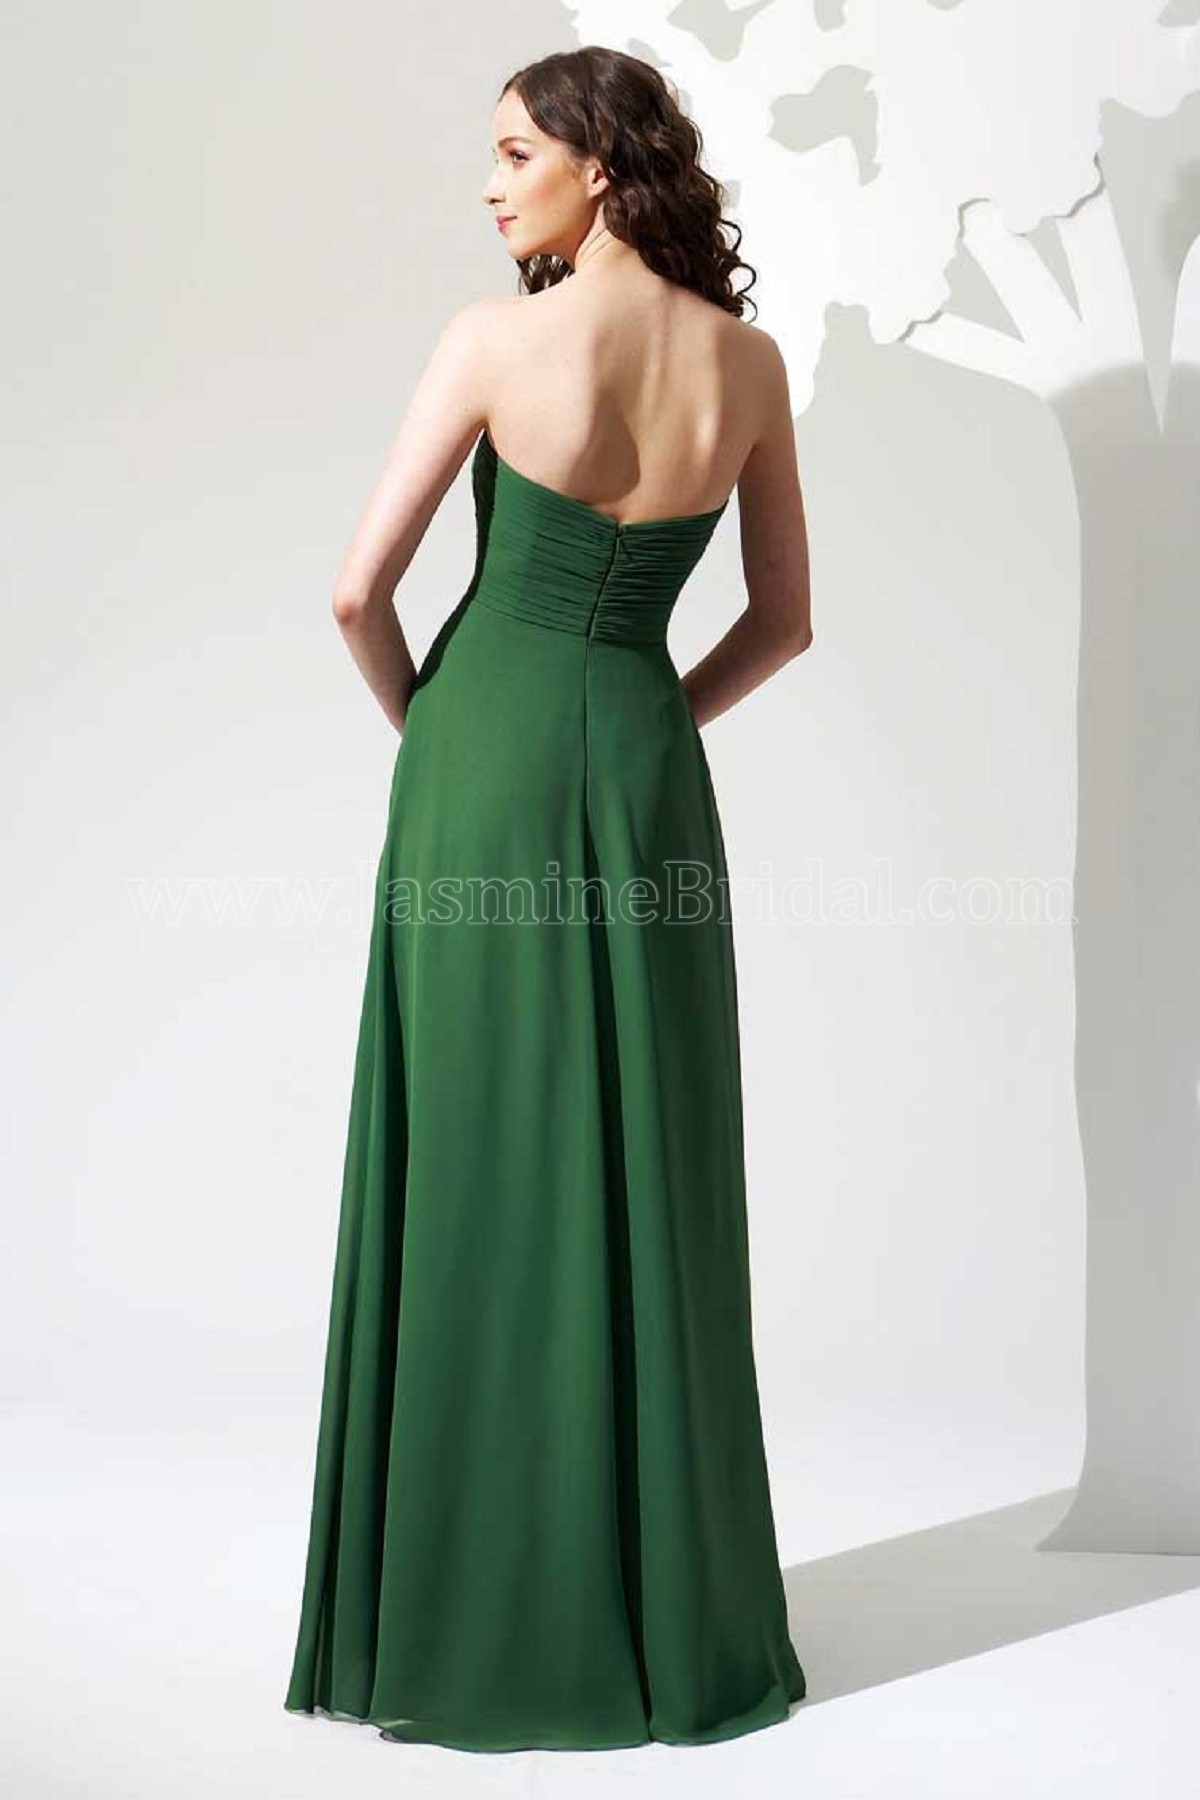 bridesmaid-dresses-B2078-B